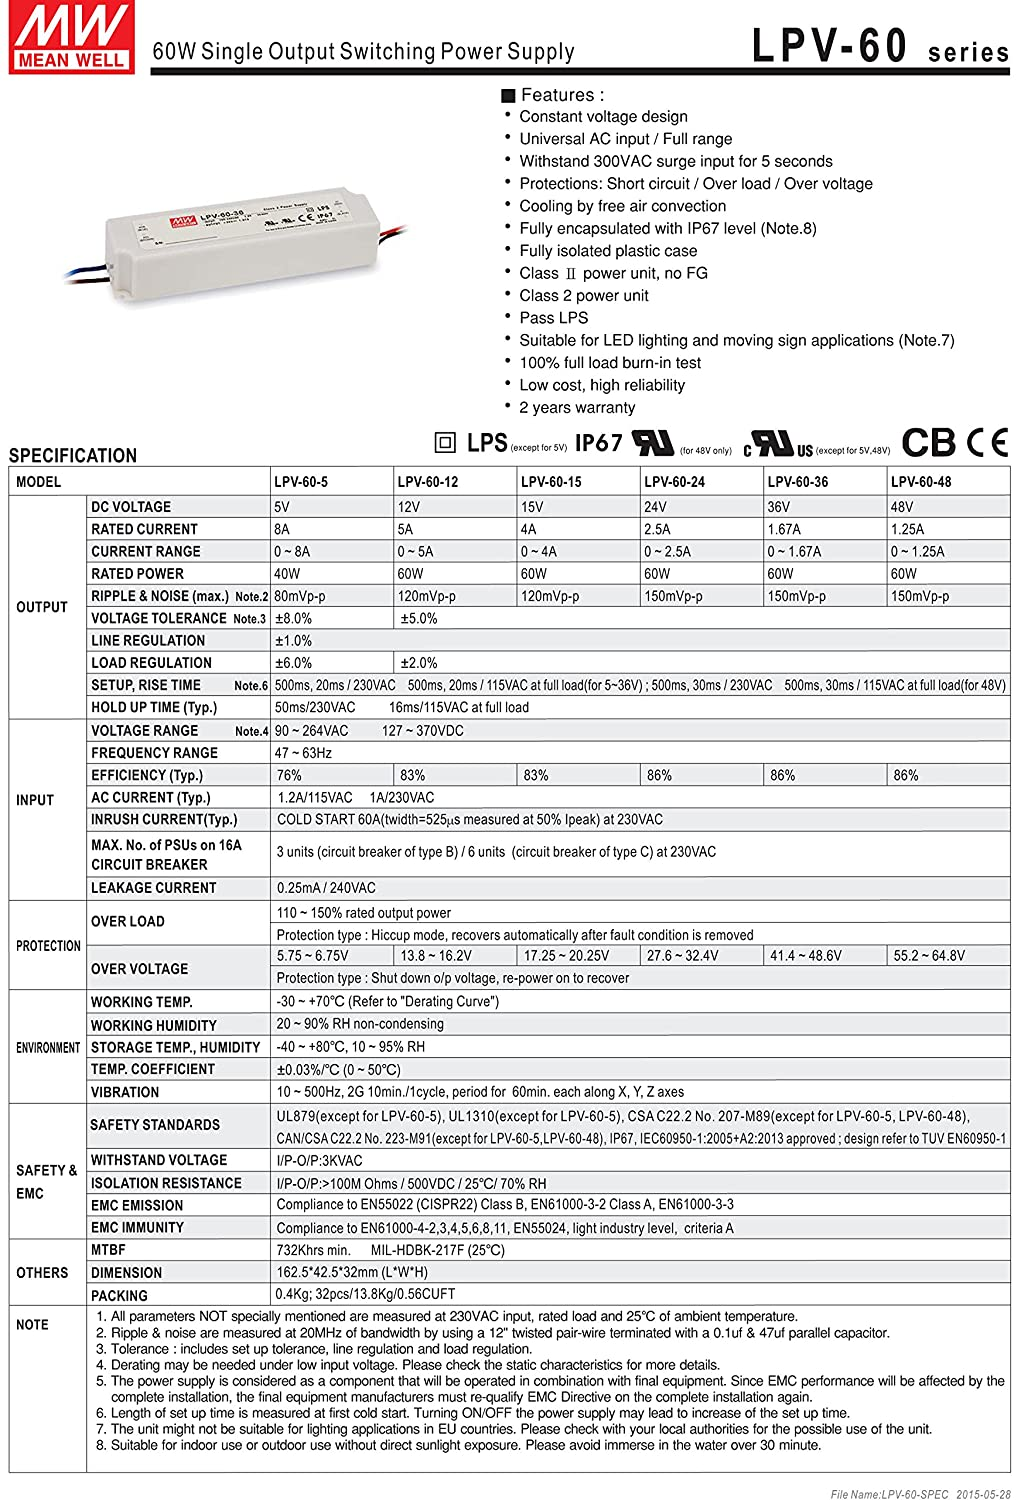 Meanwell Ul 24v 60w Approved Outdoor Waterproof Led Drive Dc12v To Dc28v Converter With Lm2585 Transformer Adapter 120 24 Volt Dc Output 2 Years Warranty By Ledjump Patio